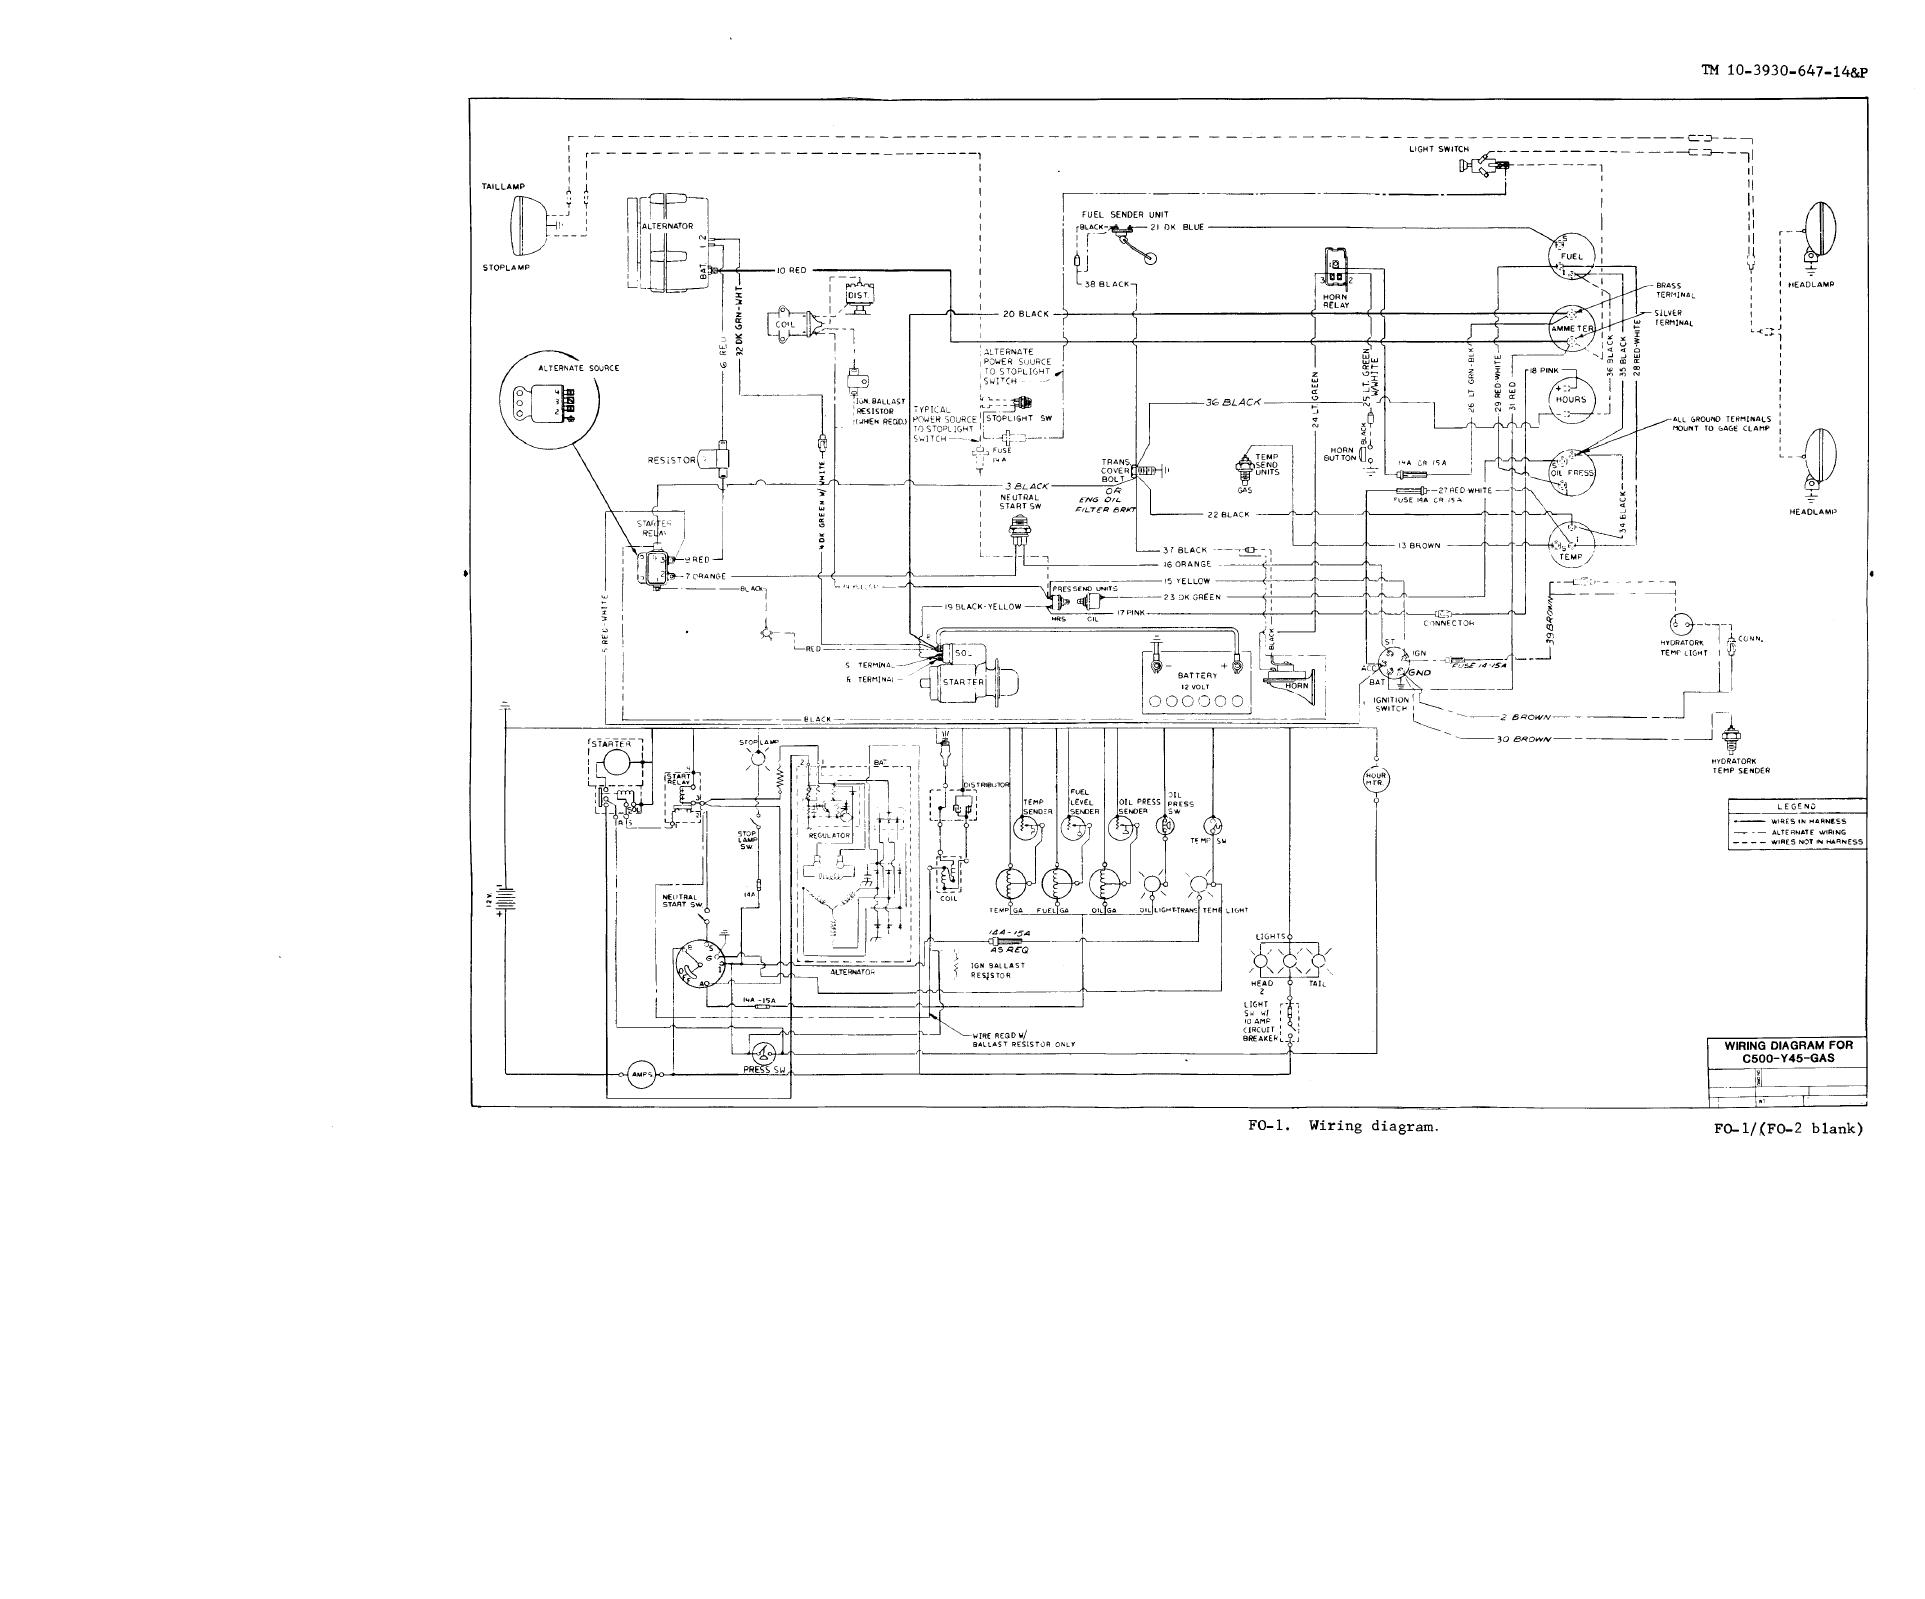 Fuel Shut Off Solenoid 239021 likewise 2005 International Dt466e Wiring Diagrams in addition Freightliner Air System Diagram furthermore Caterpillar Fuse Box Diagram besides Chevy Original Parts Catalog Chevy Free Image About Wiring. on hino truck wiring diagrams